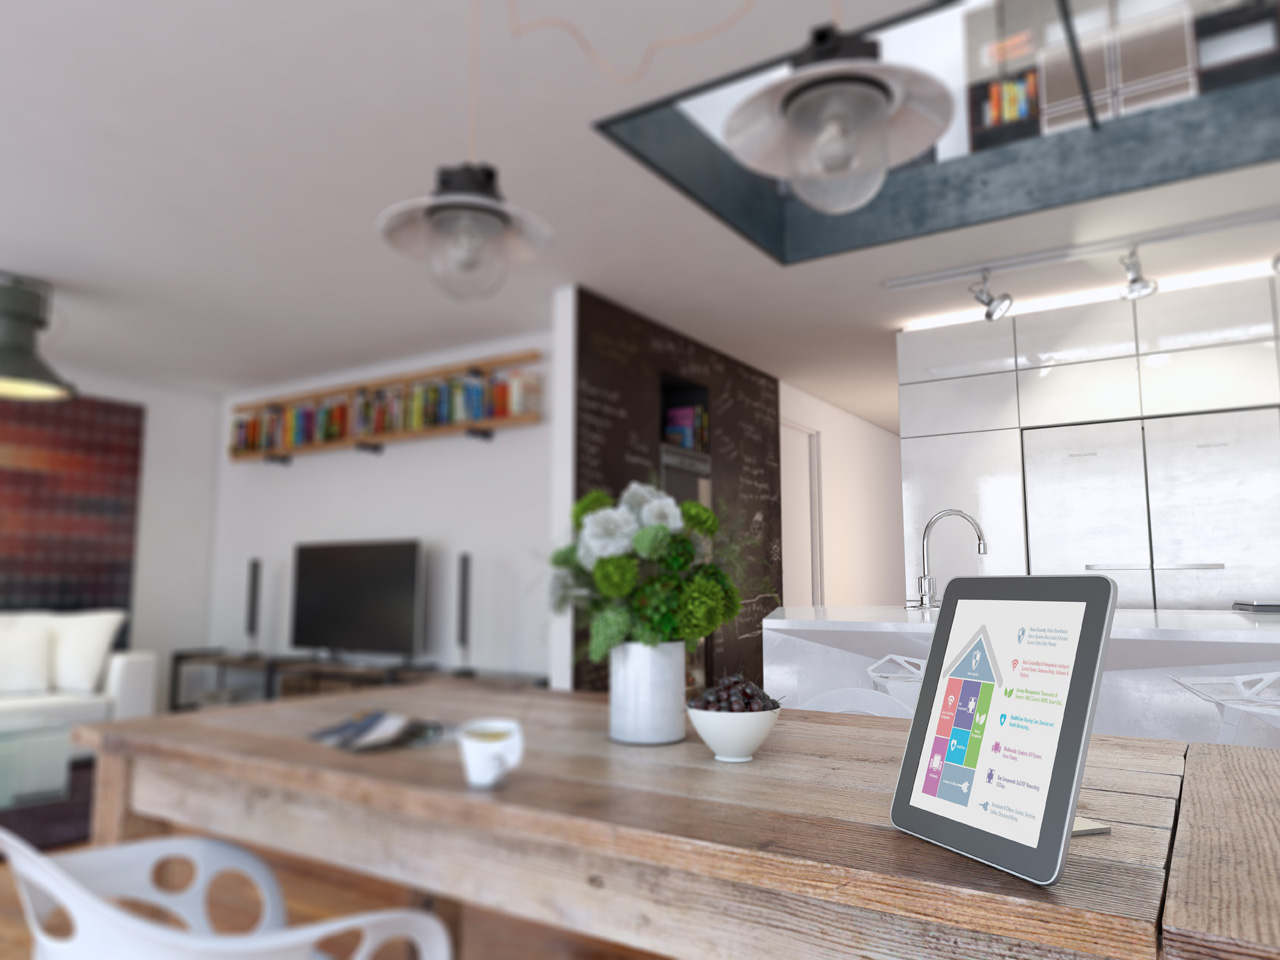 Smart living : un concept de vie et d'habitat intelligents